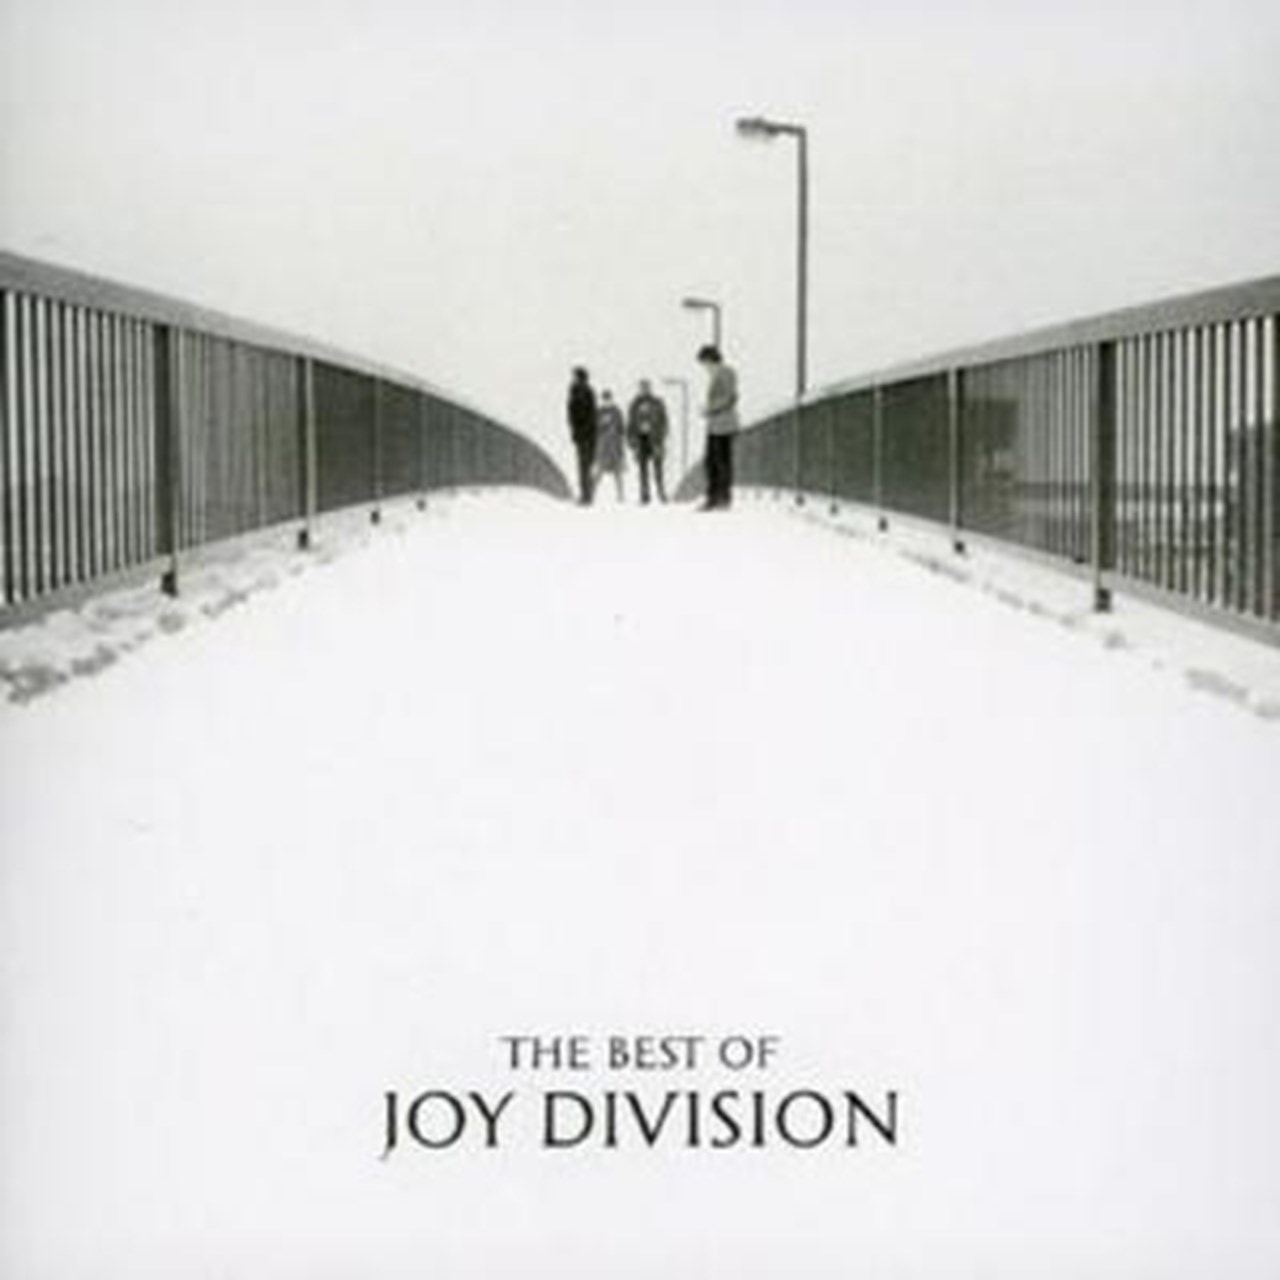 The Best of Joy Division - 1